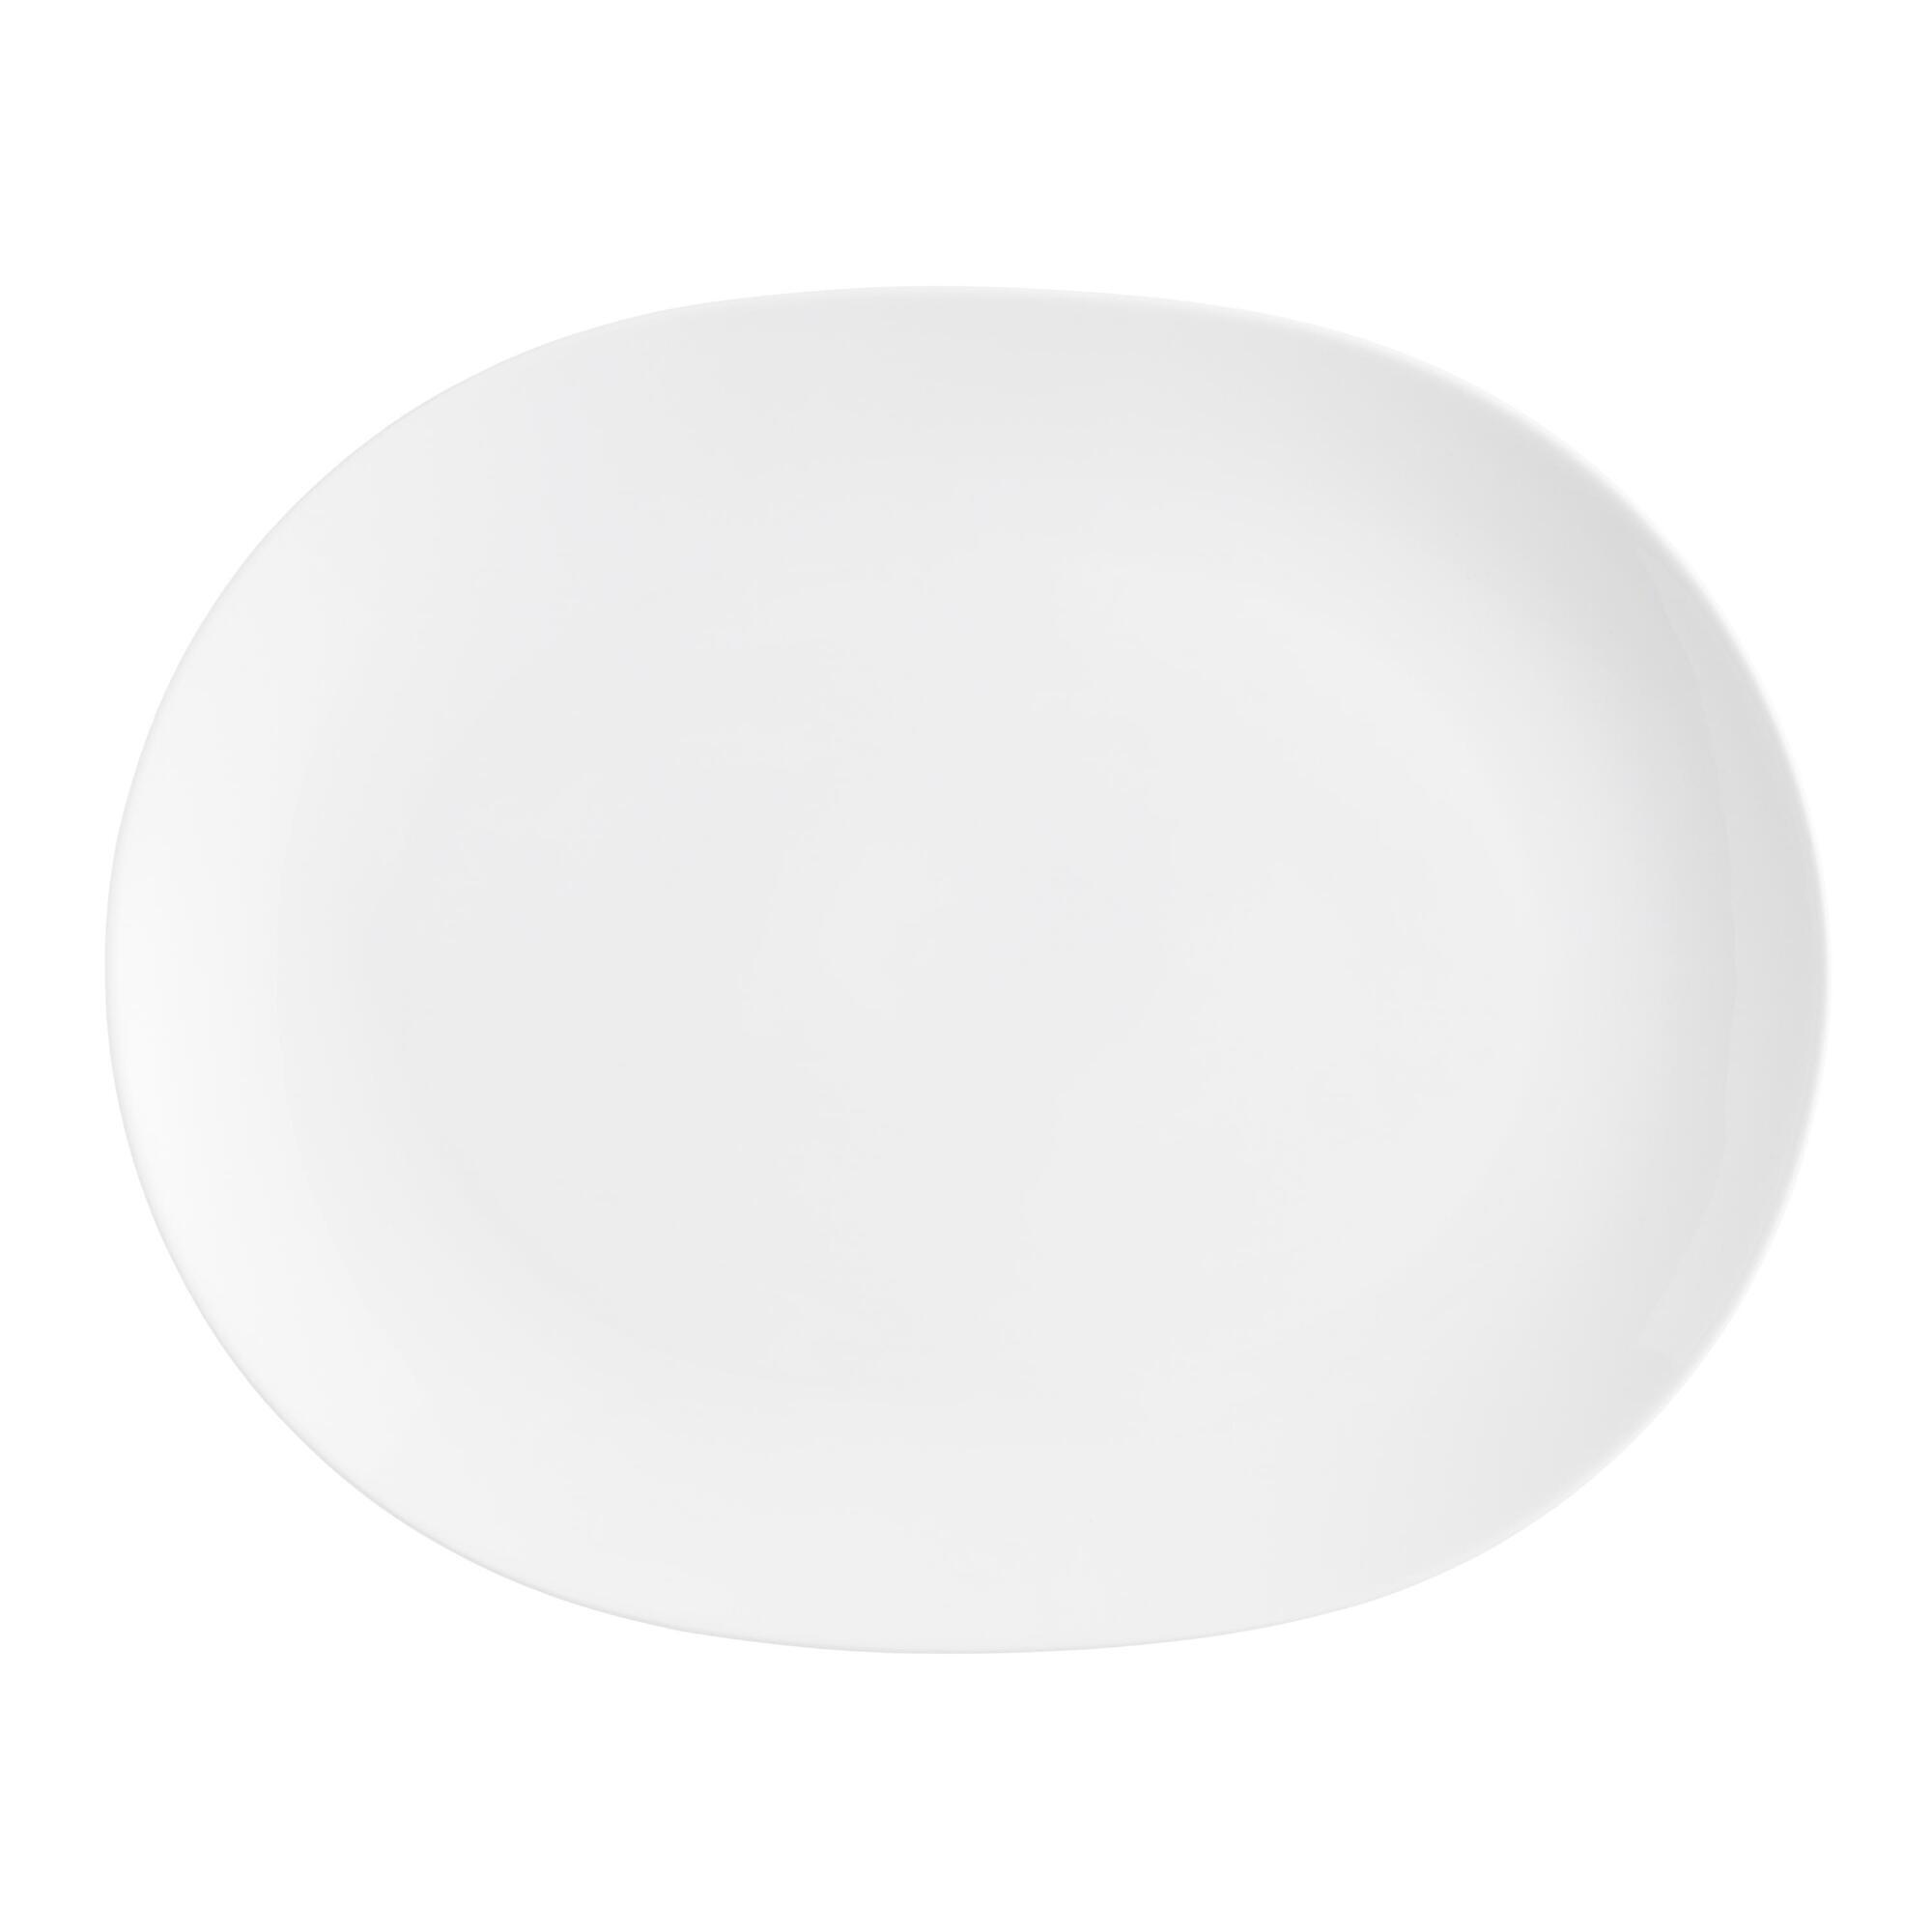 White Coupe Oval Platter - Porcelain by World Market